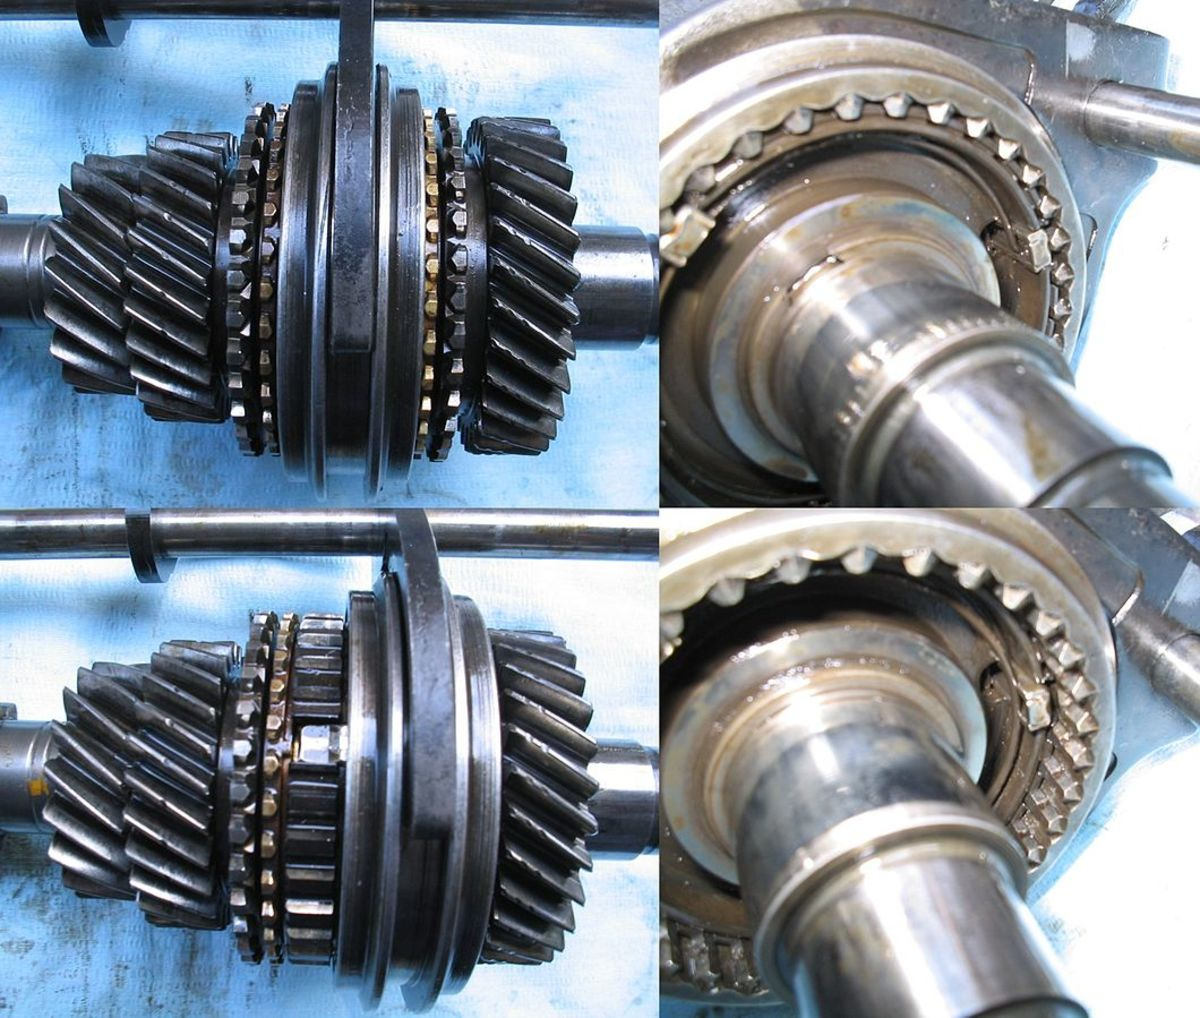 A worn or damaged synchronizer can fail to equalize speed and cause gears to grind.